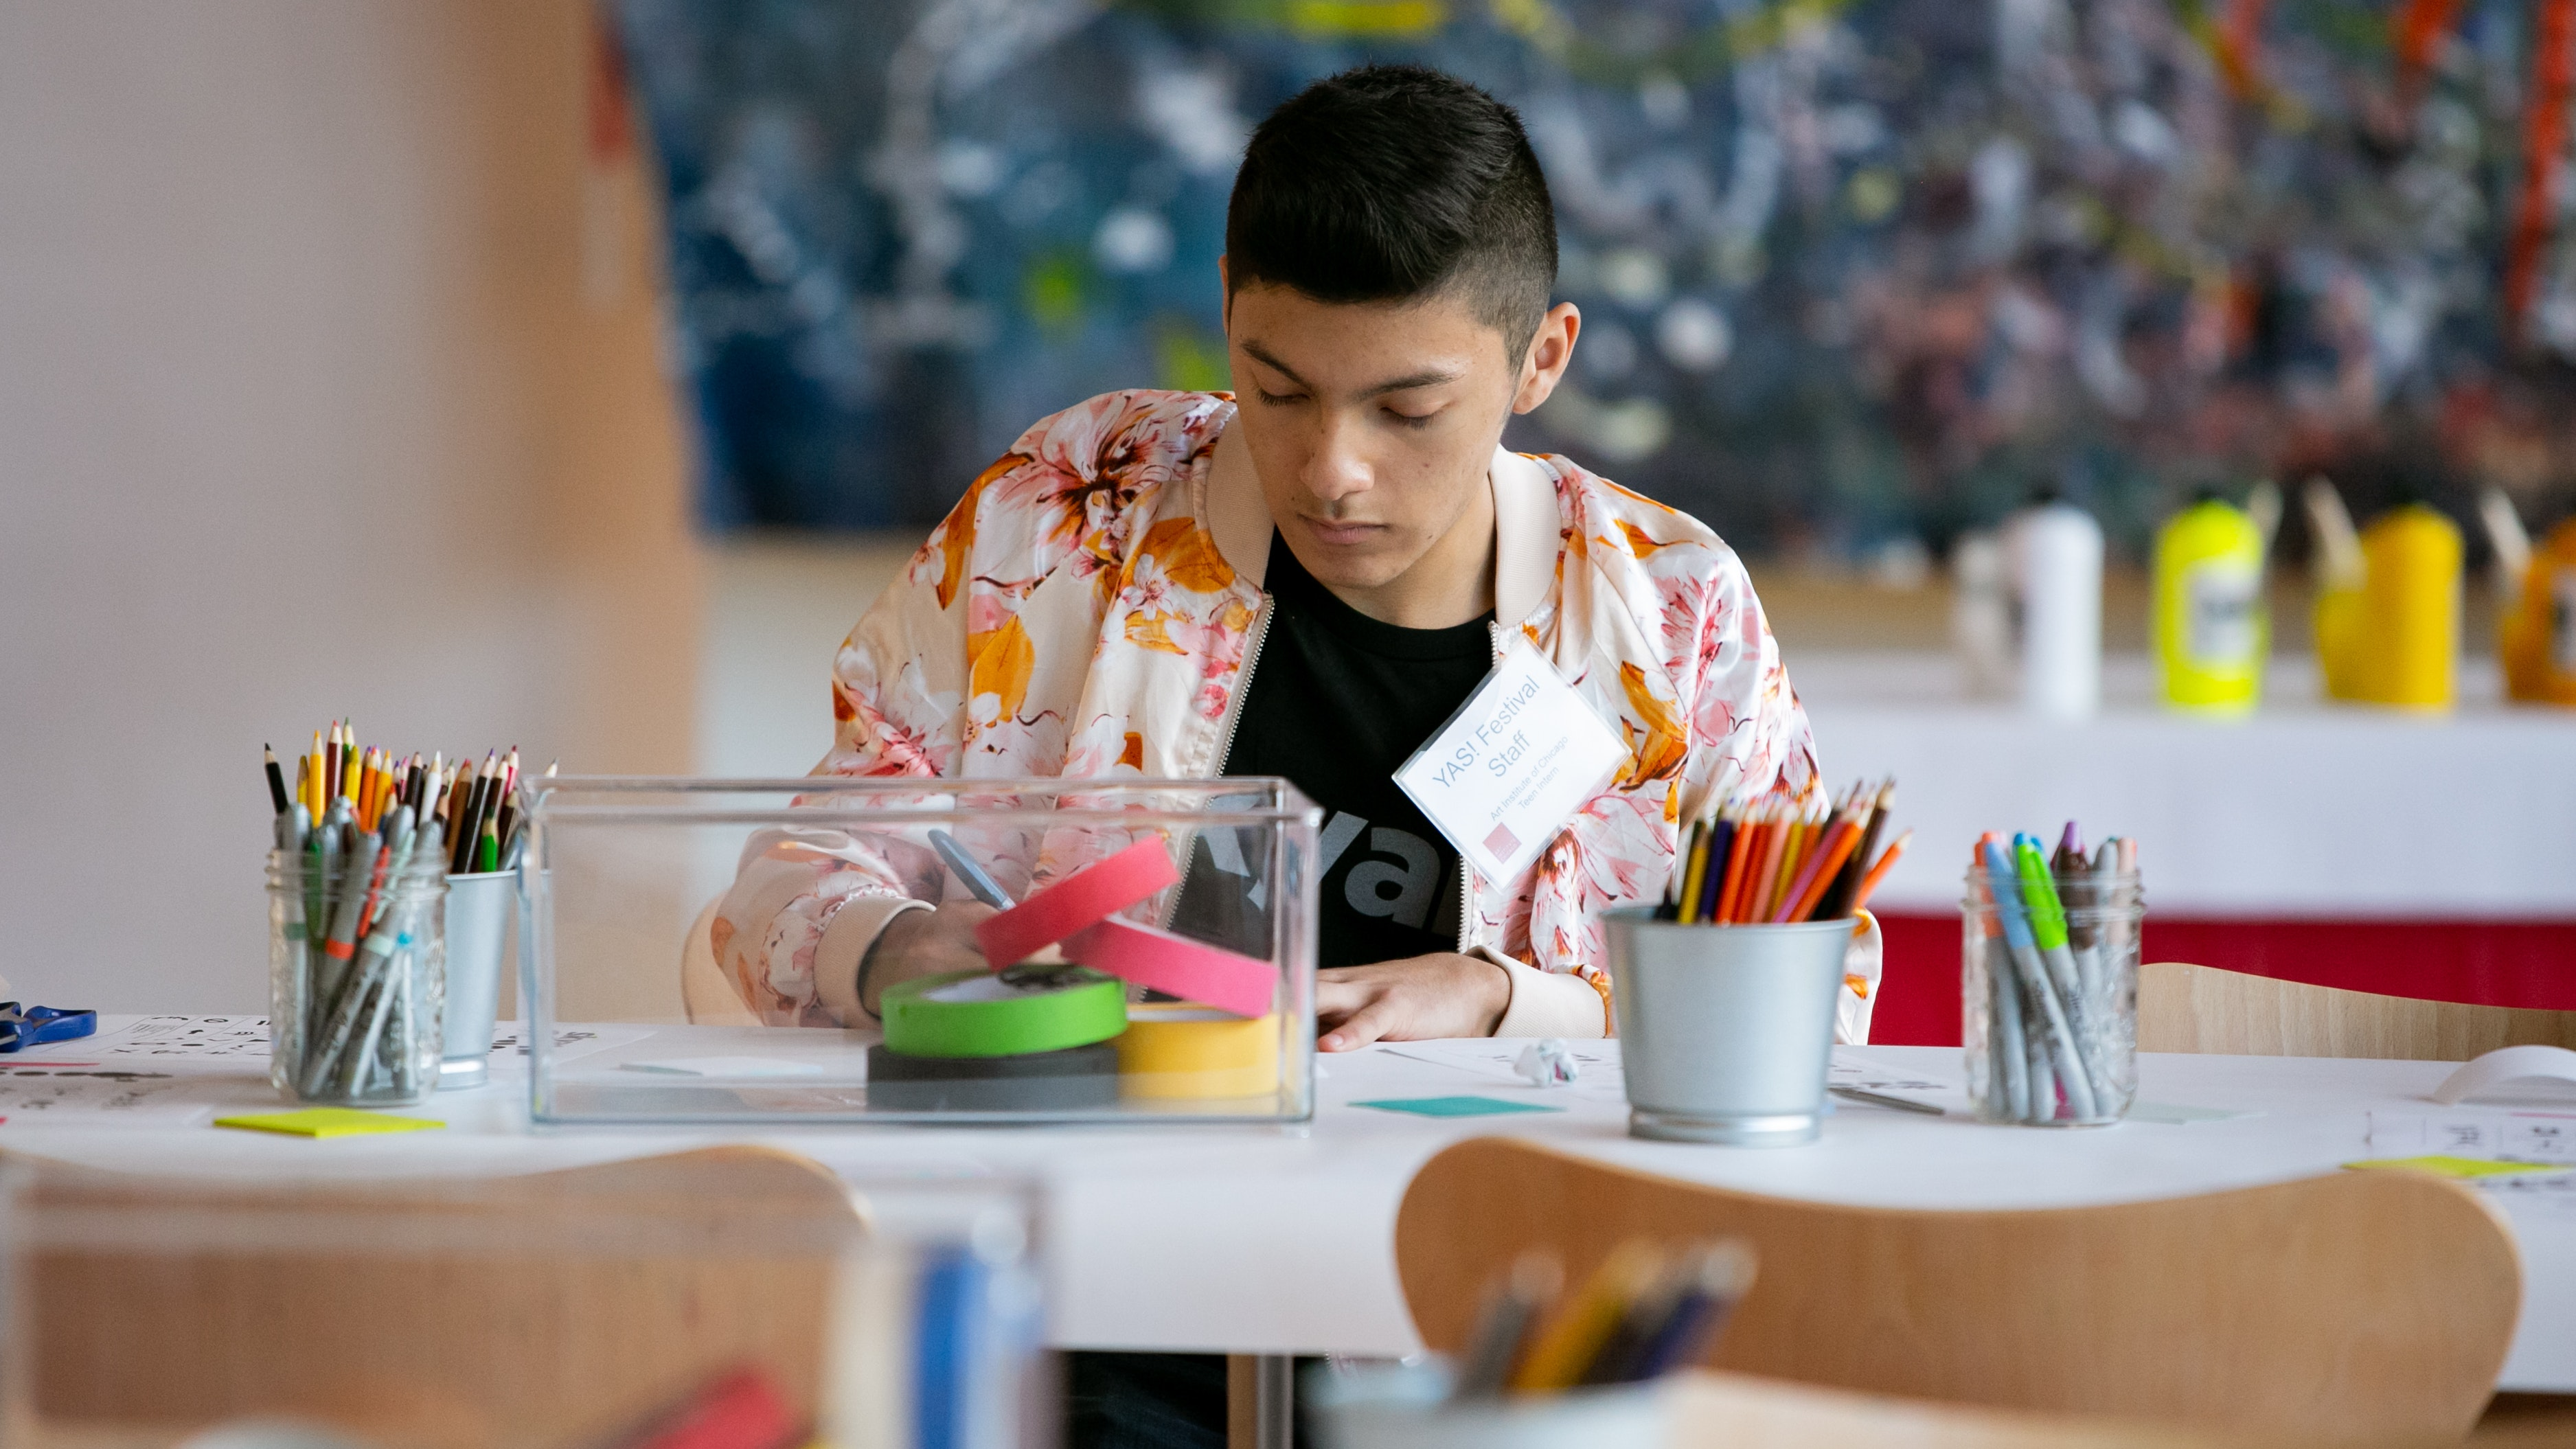 A photo of a teen making art at a table